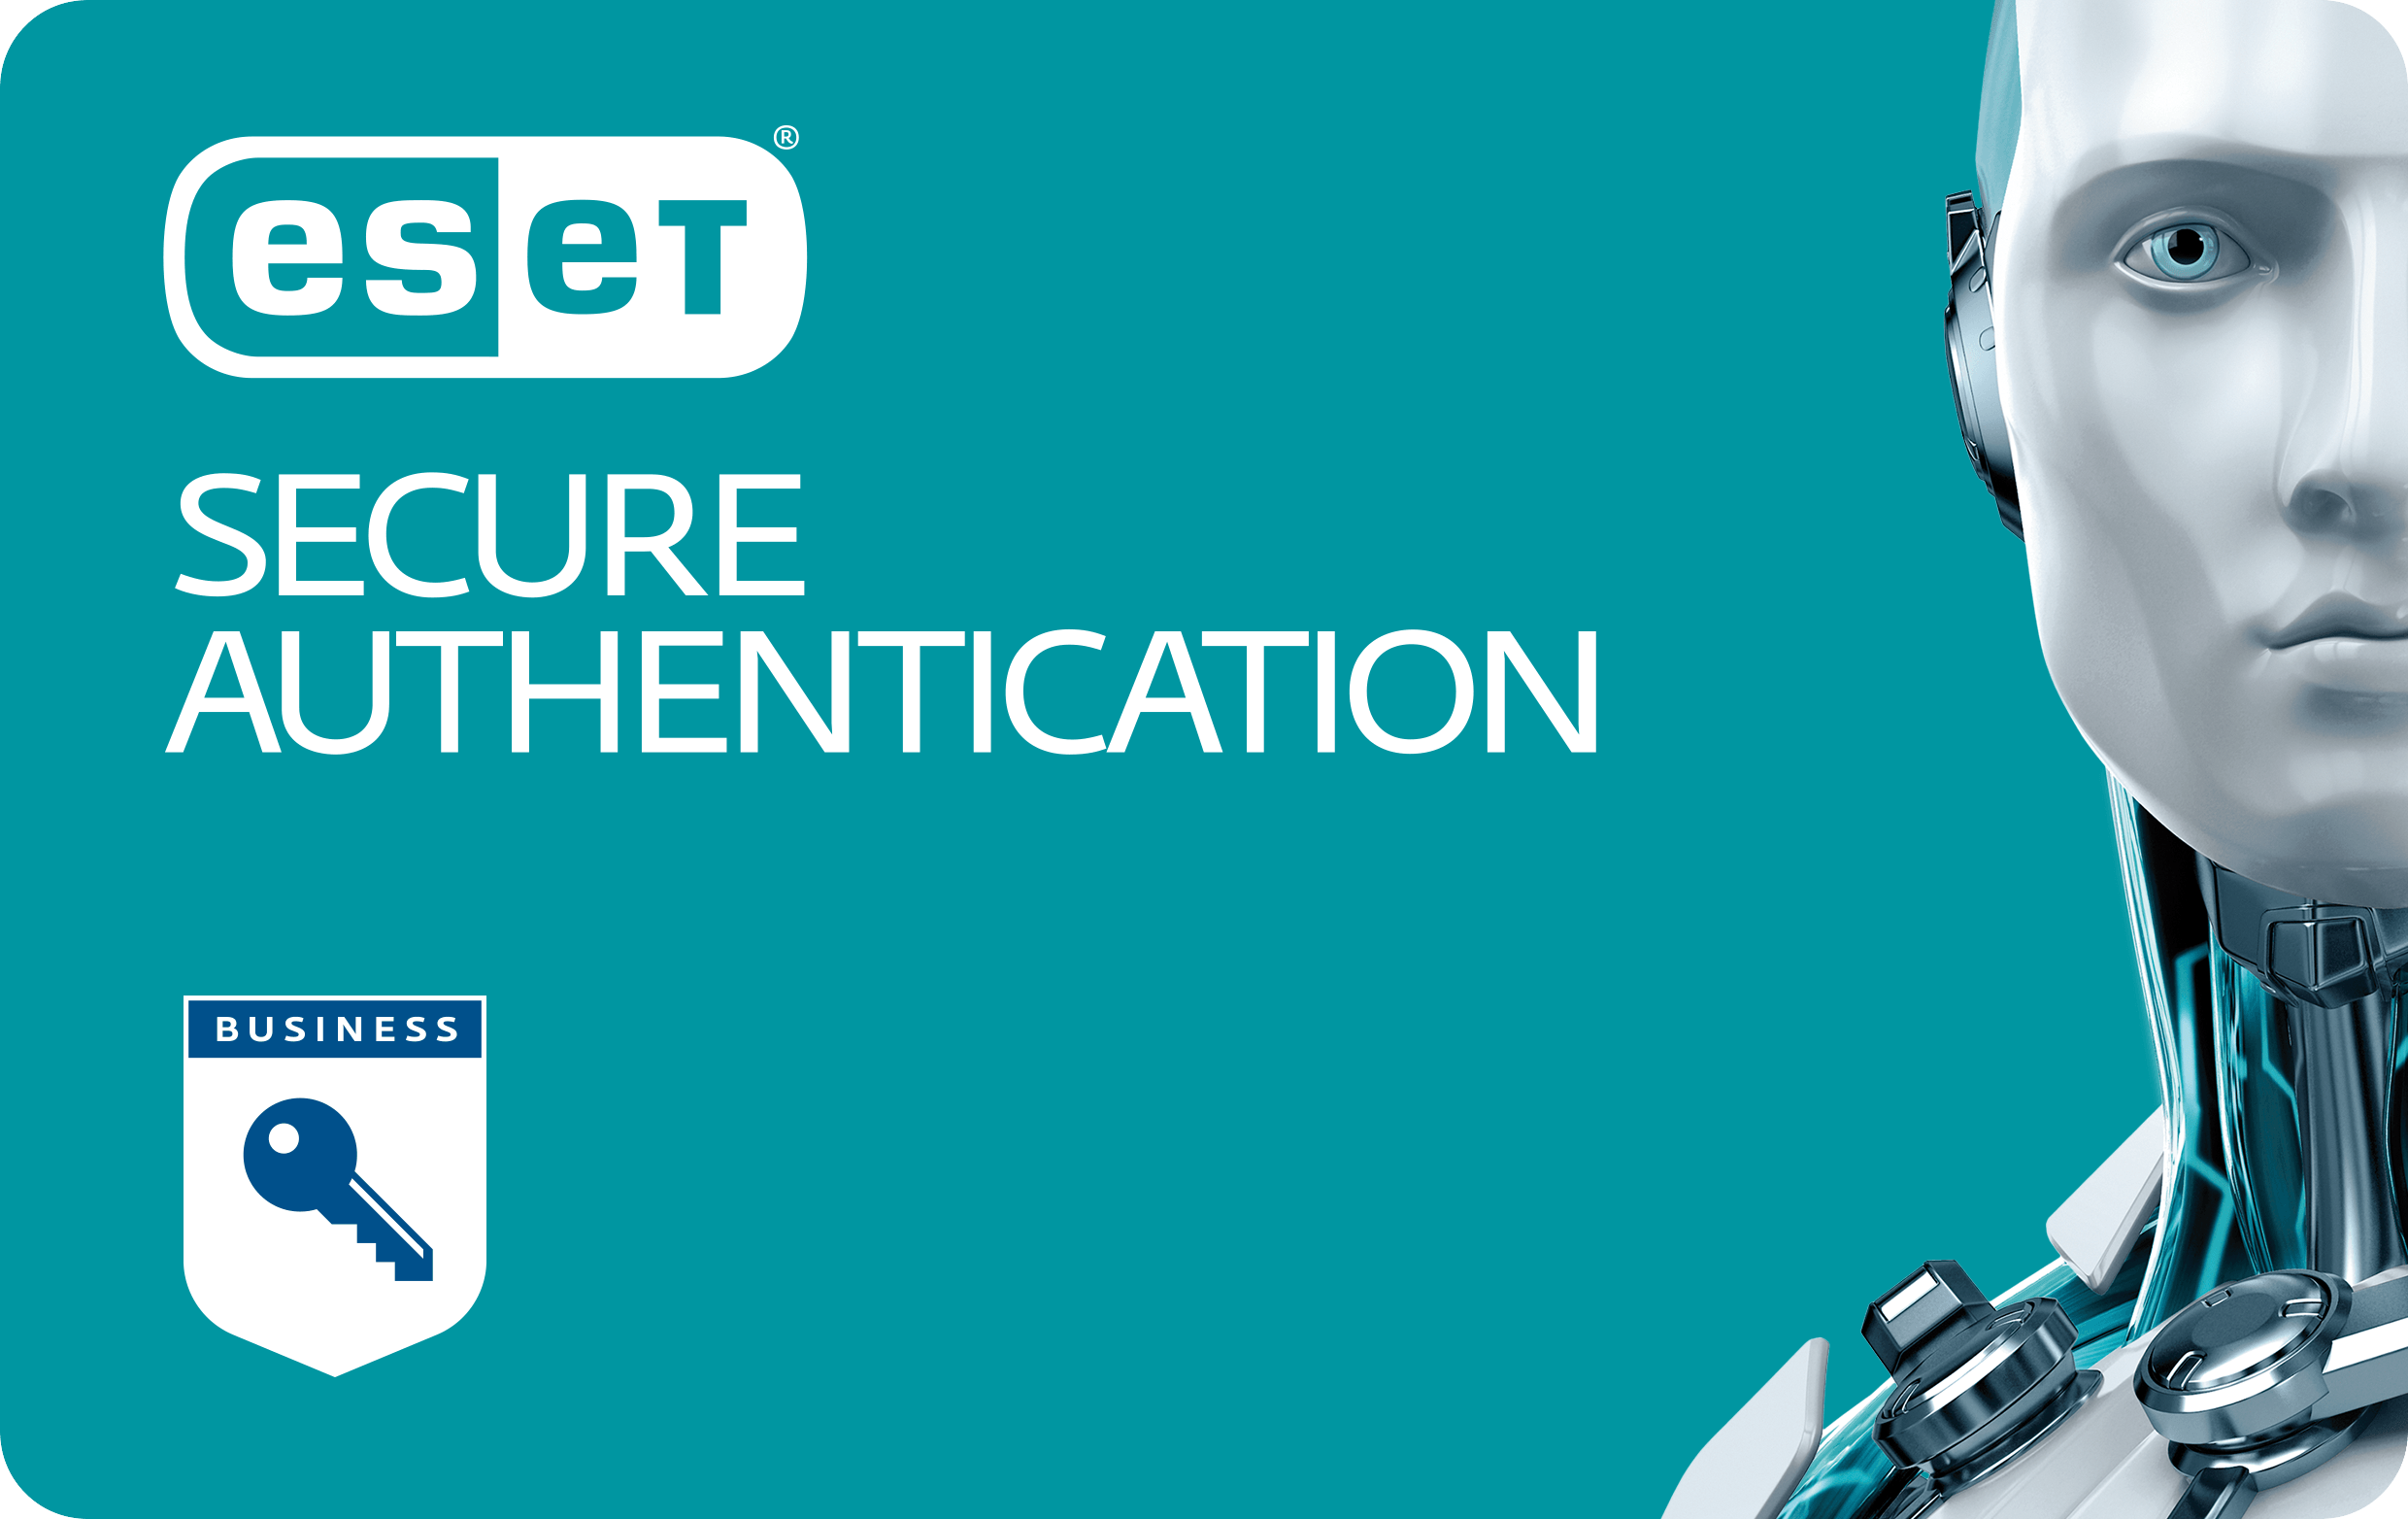 card - ESET Secure Authentication - RGB